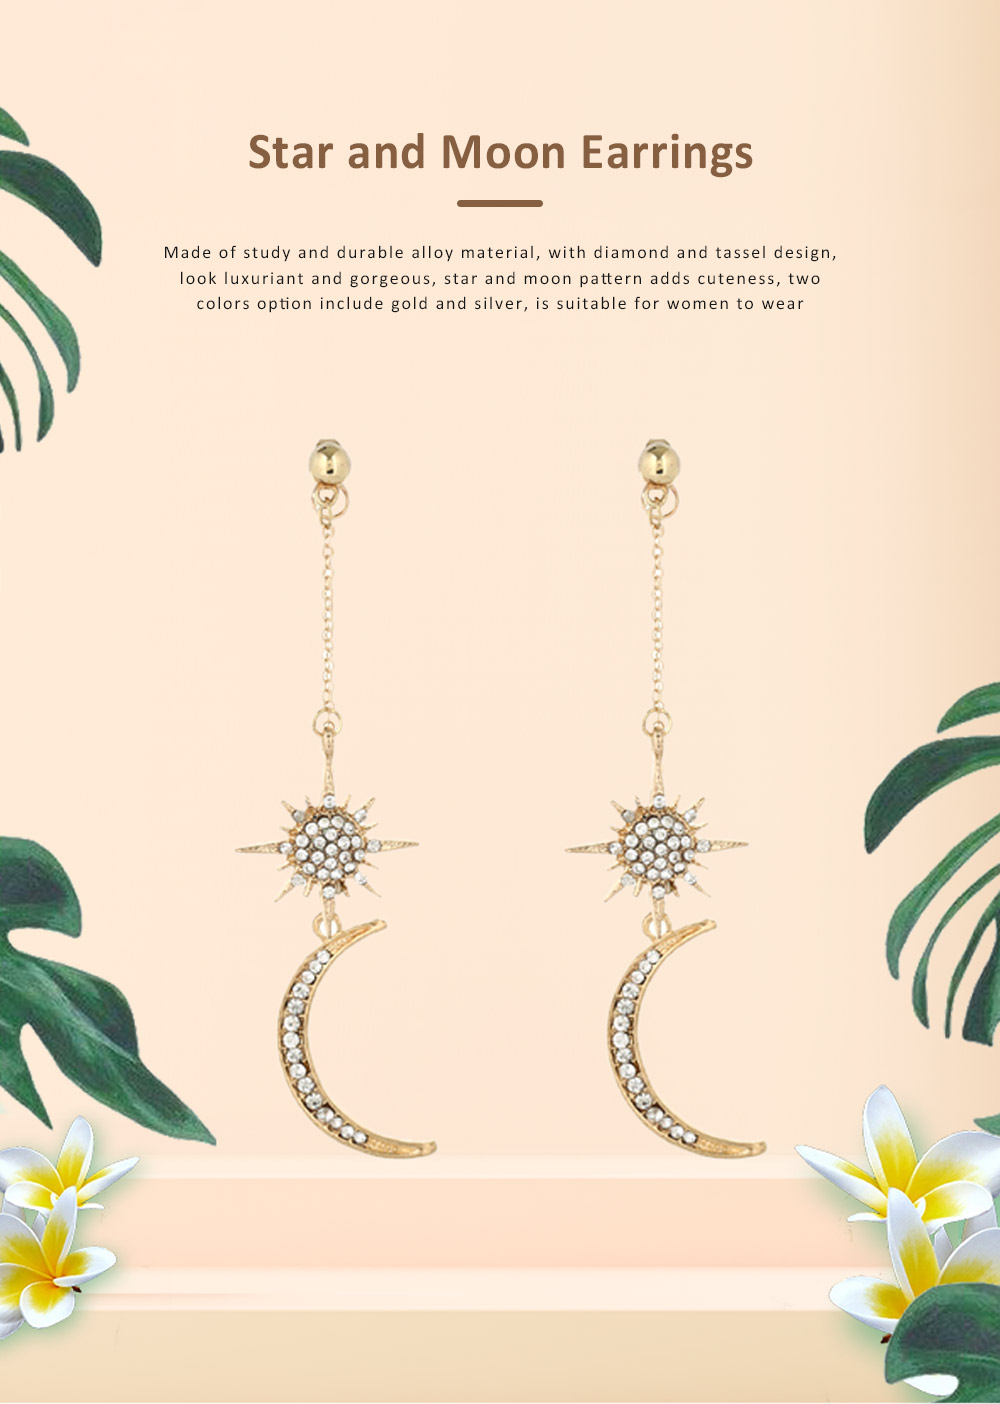 Star and Moon Earrings, with High-quality Alloy Material, Luxuriant Diamond and Tassel Pendant Earrings 0